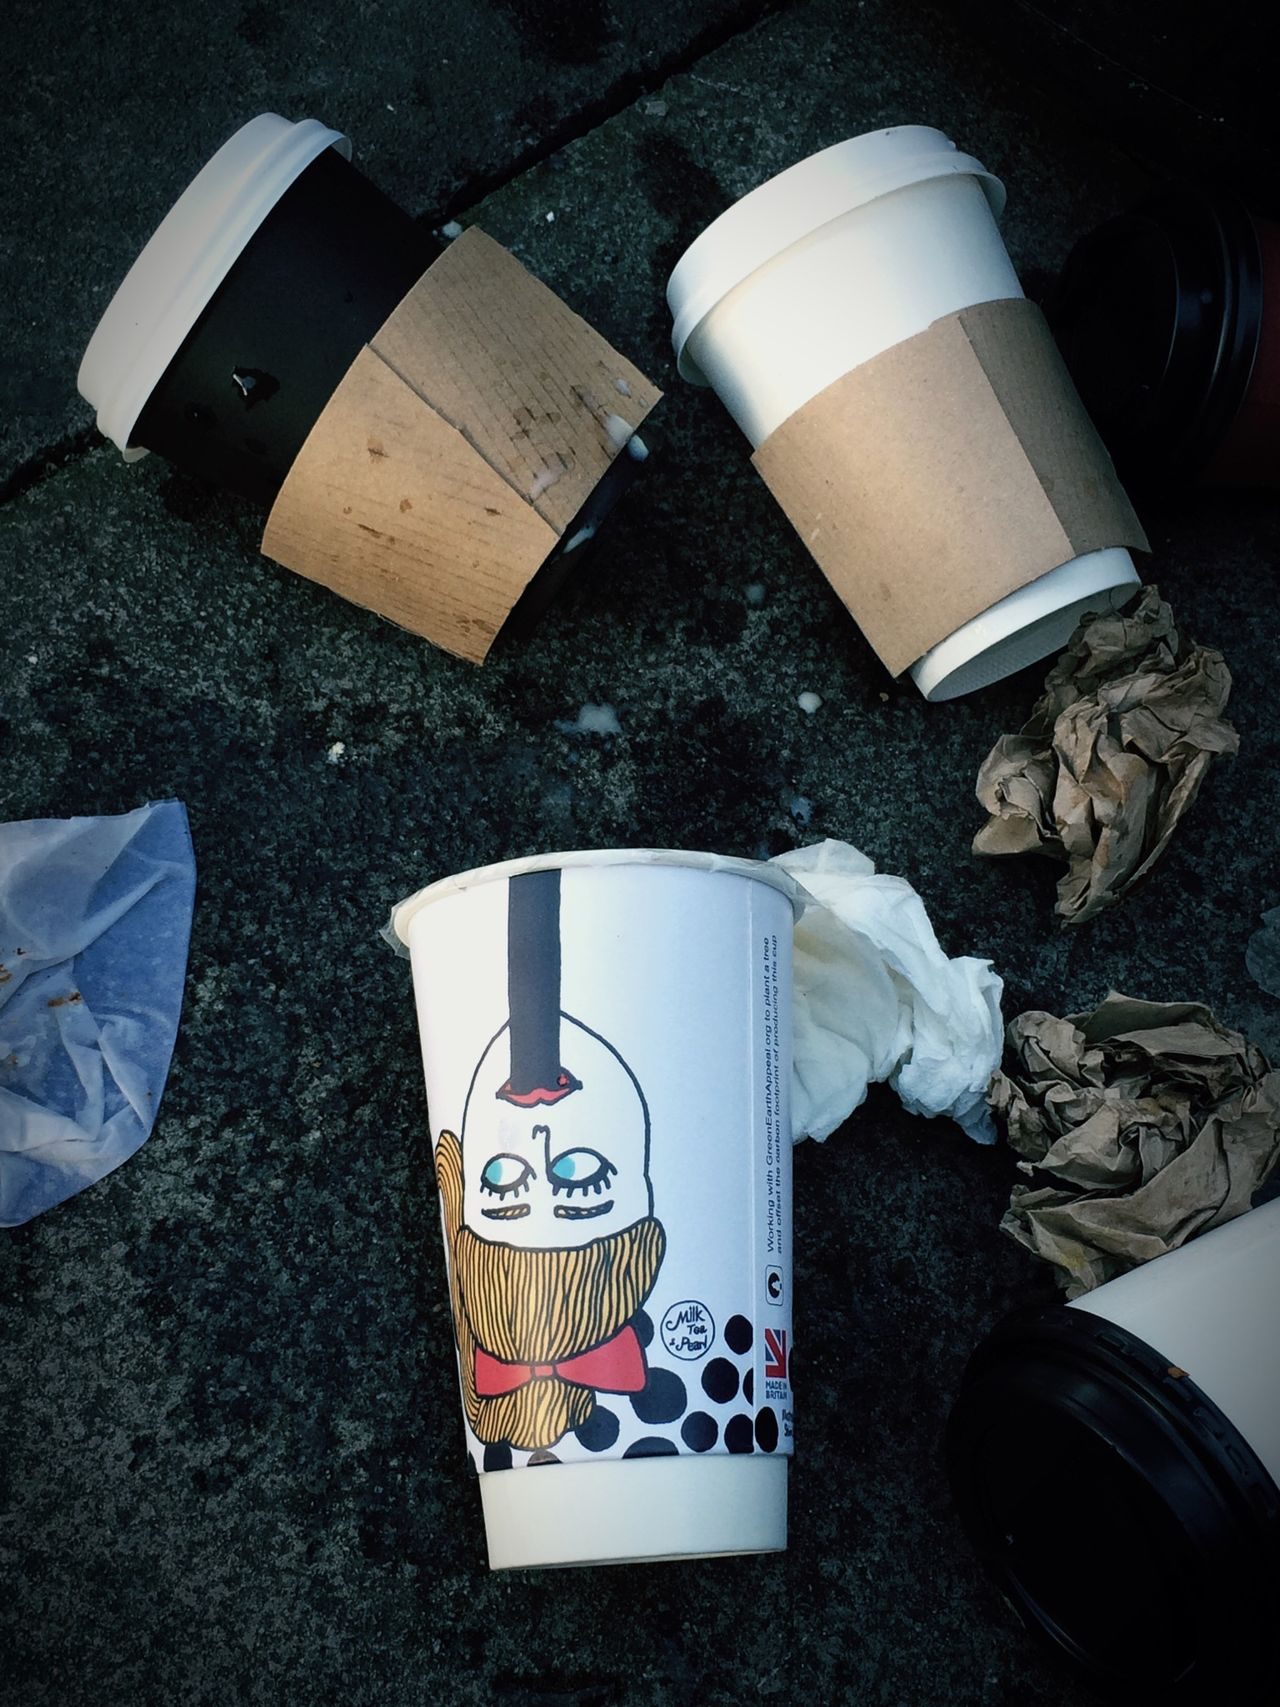 Bin Streetstyle Empty Waste Recycle Recycling Coffee Coffecup Givingup Safetheplanet Trash Humanrace Human